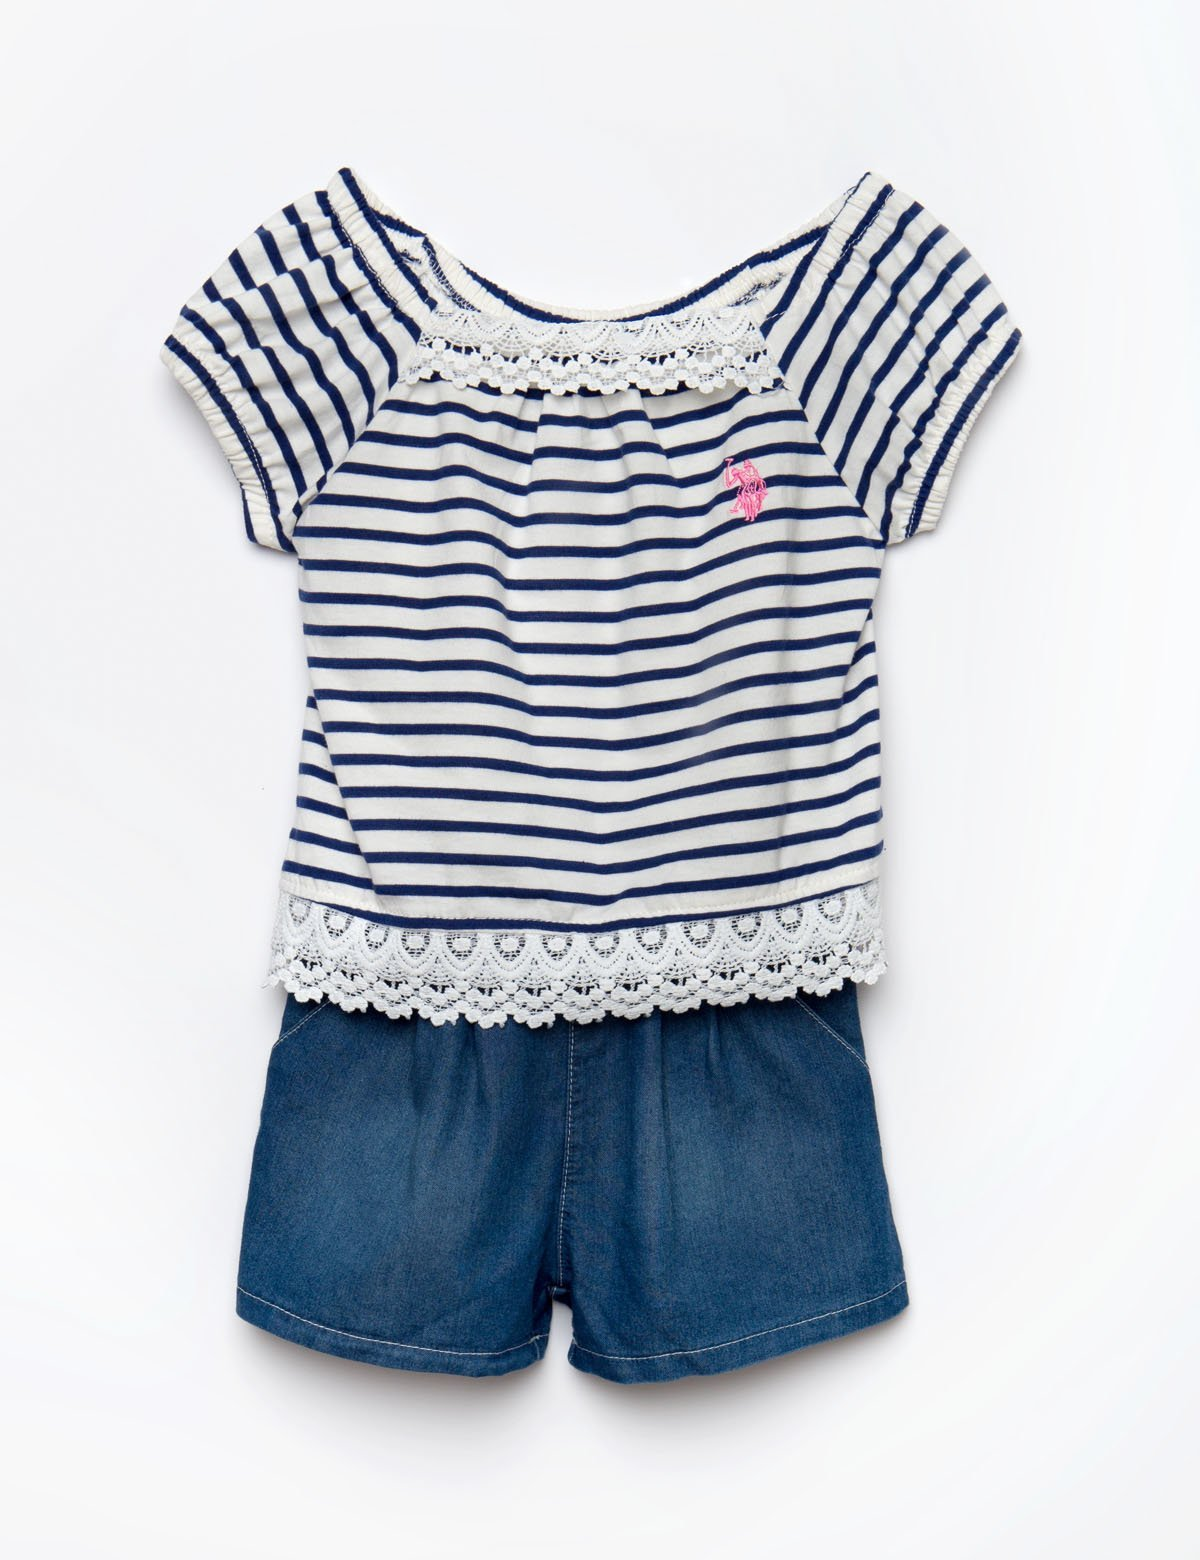 TODDLER NAVY AND VANILLA ROMPER